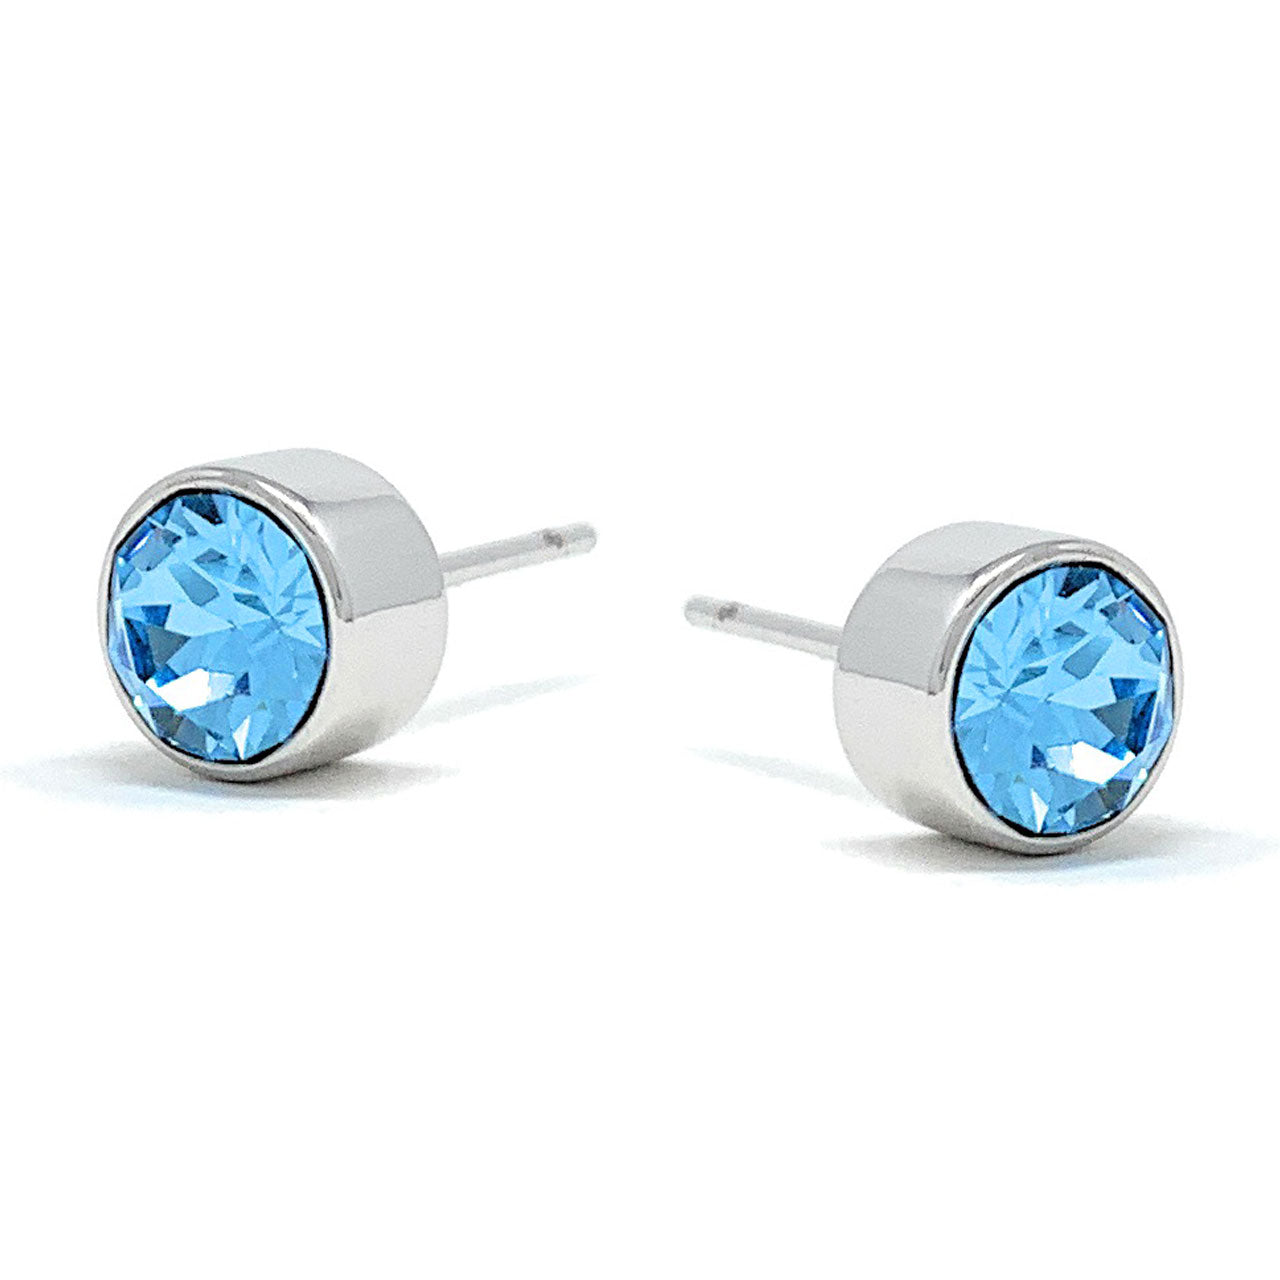 Harley Small Stud Earrings with Blue Aquamarine Round Crystals from Swarovski Silver Toned Rhodium Plated - Ed Heart